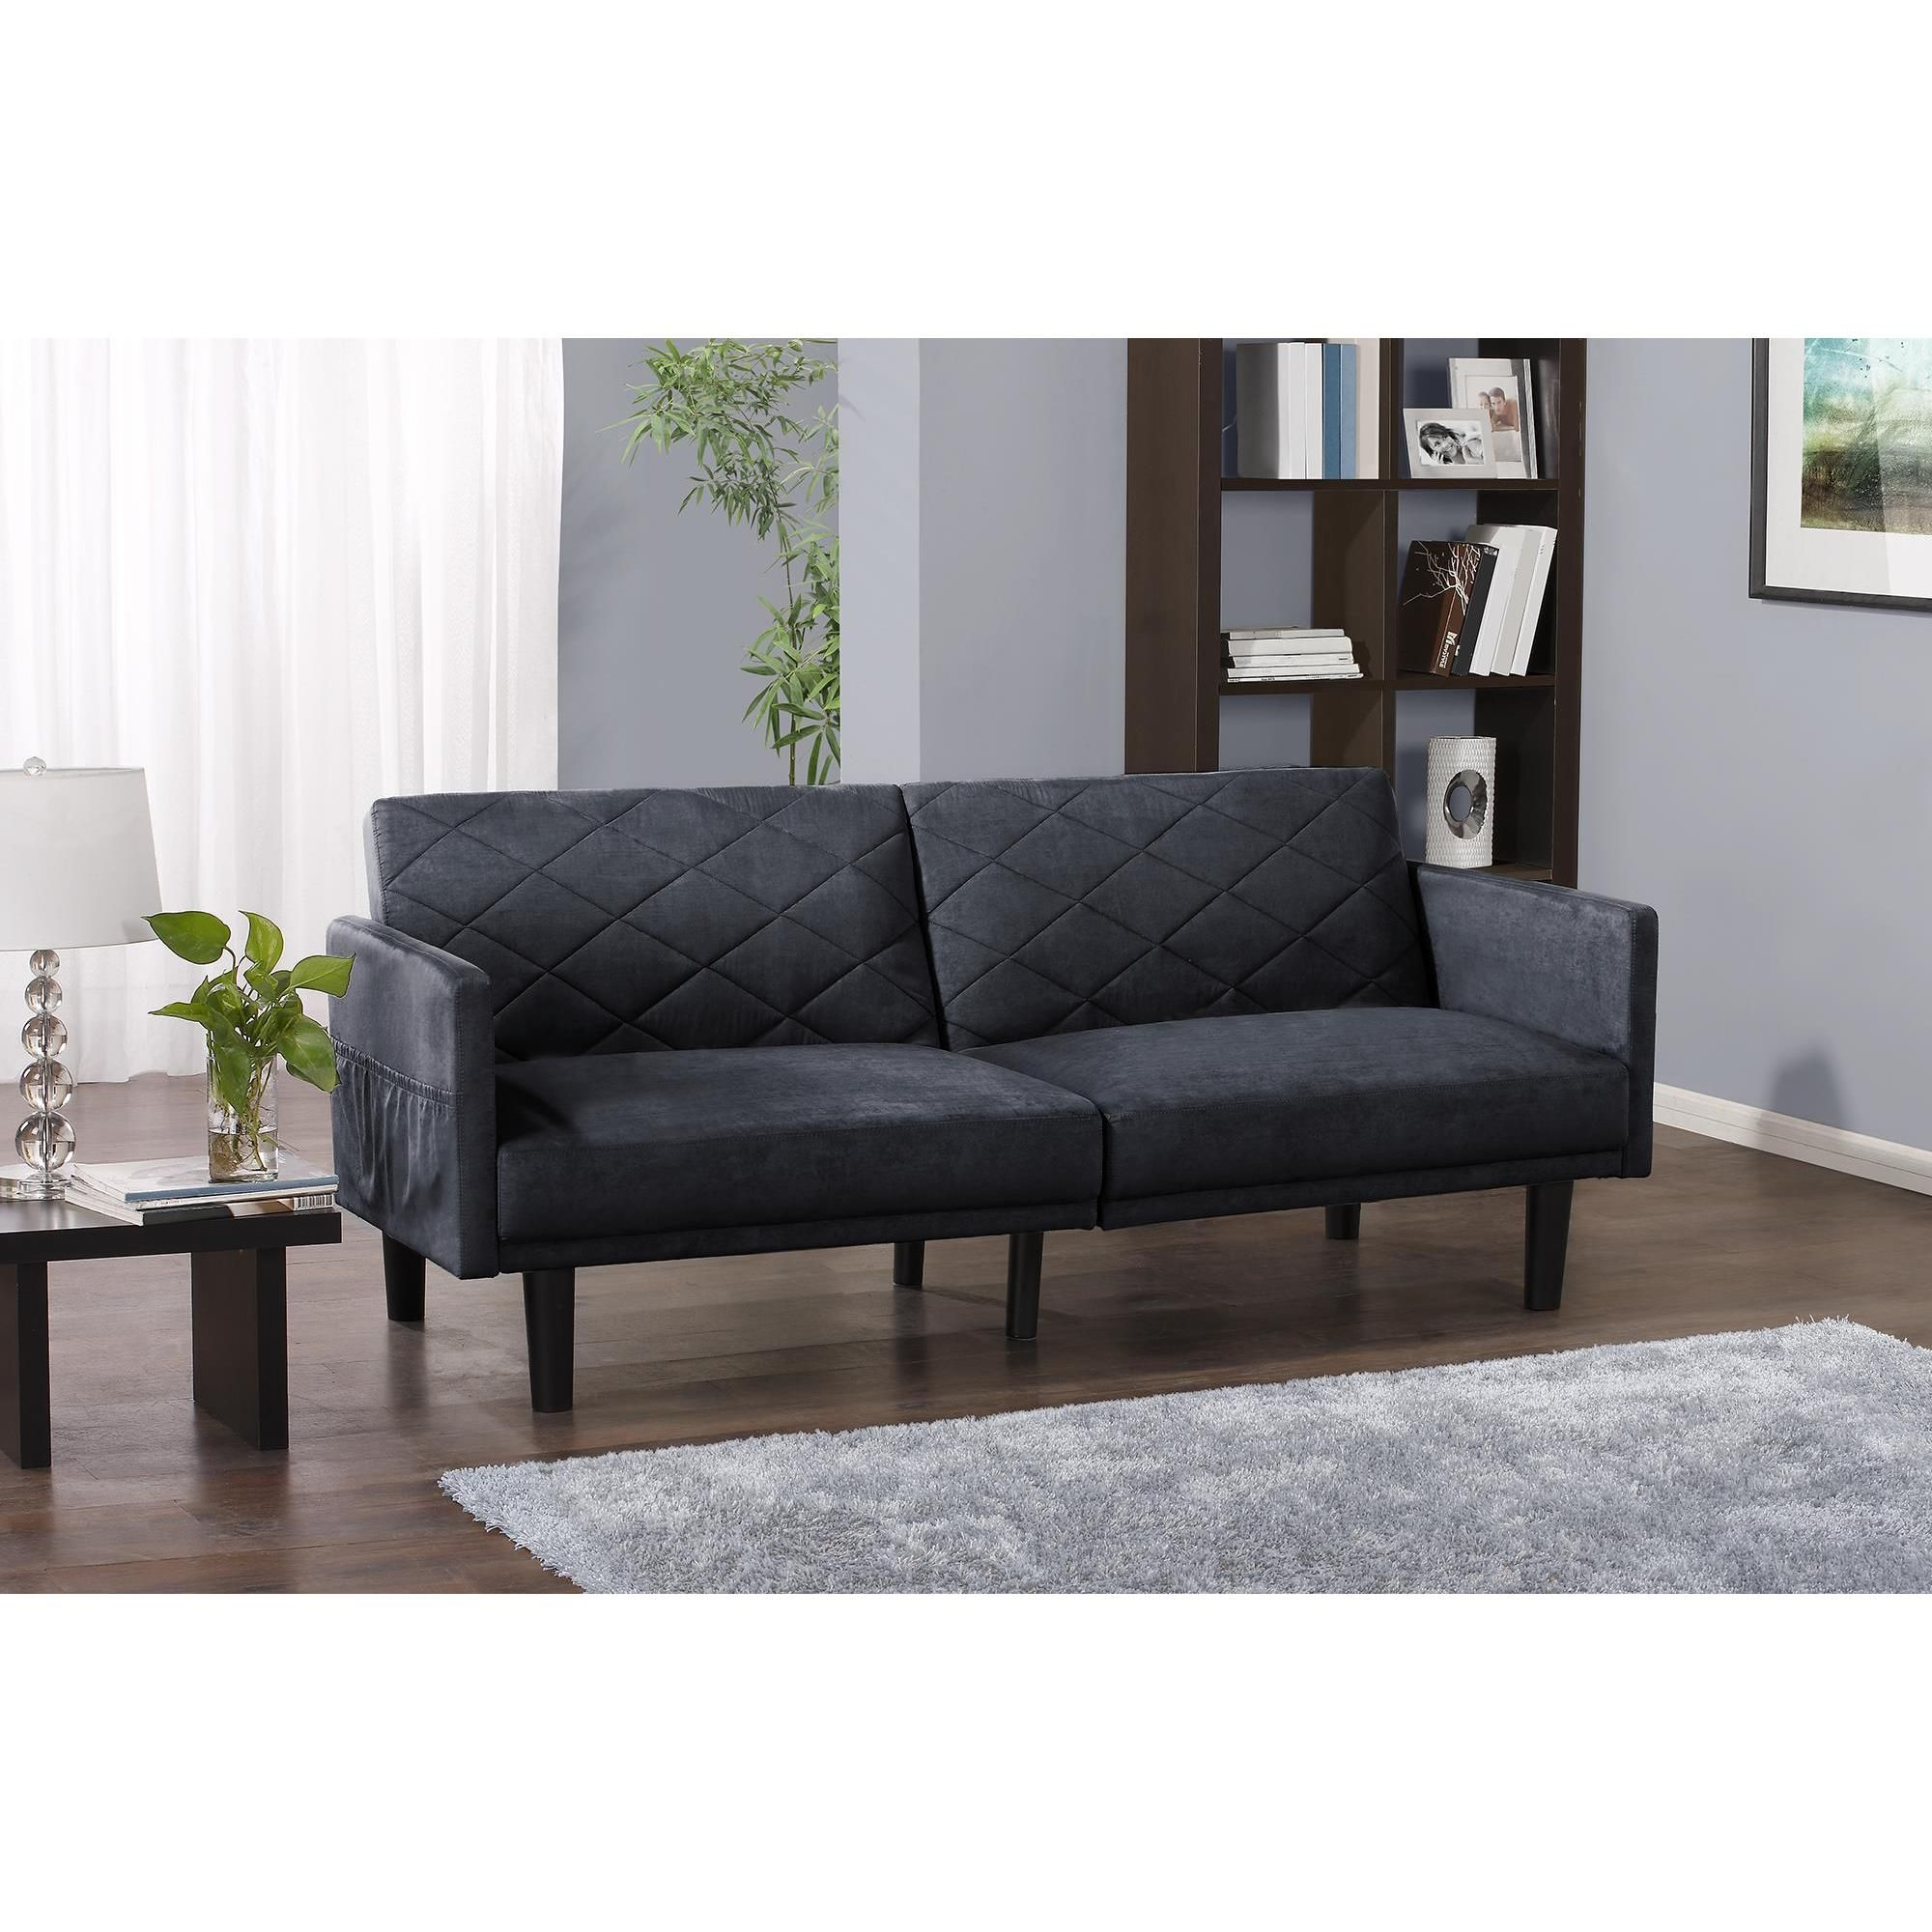 The Cortland Microfiber Futon from DHP with its clean and classic lines offers enduring comfort, while it's spacious as it is sleek. The low back cushions and deep seats offer laid-back coziness in family rooms, living rooms and guest rooms.